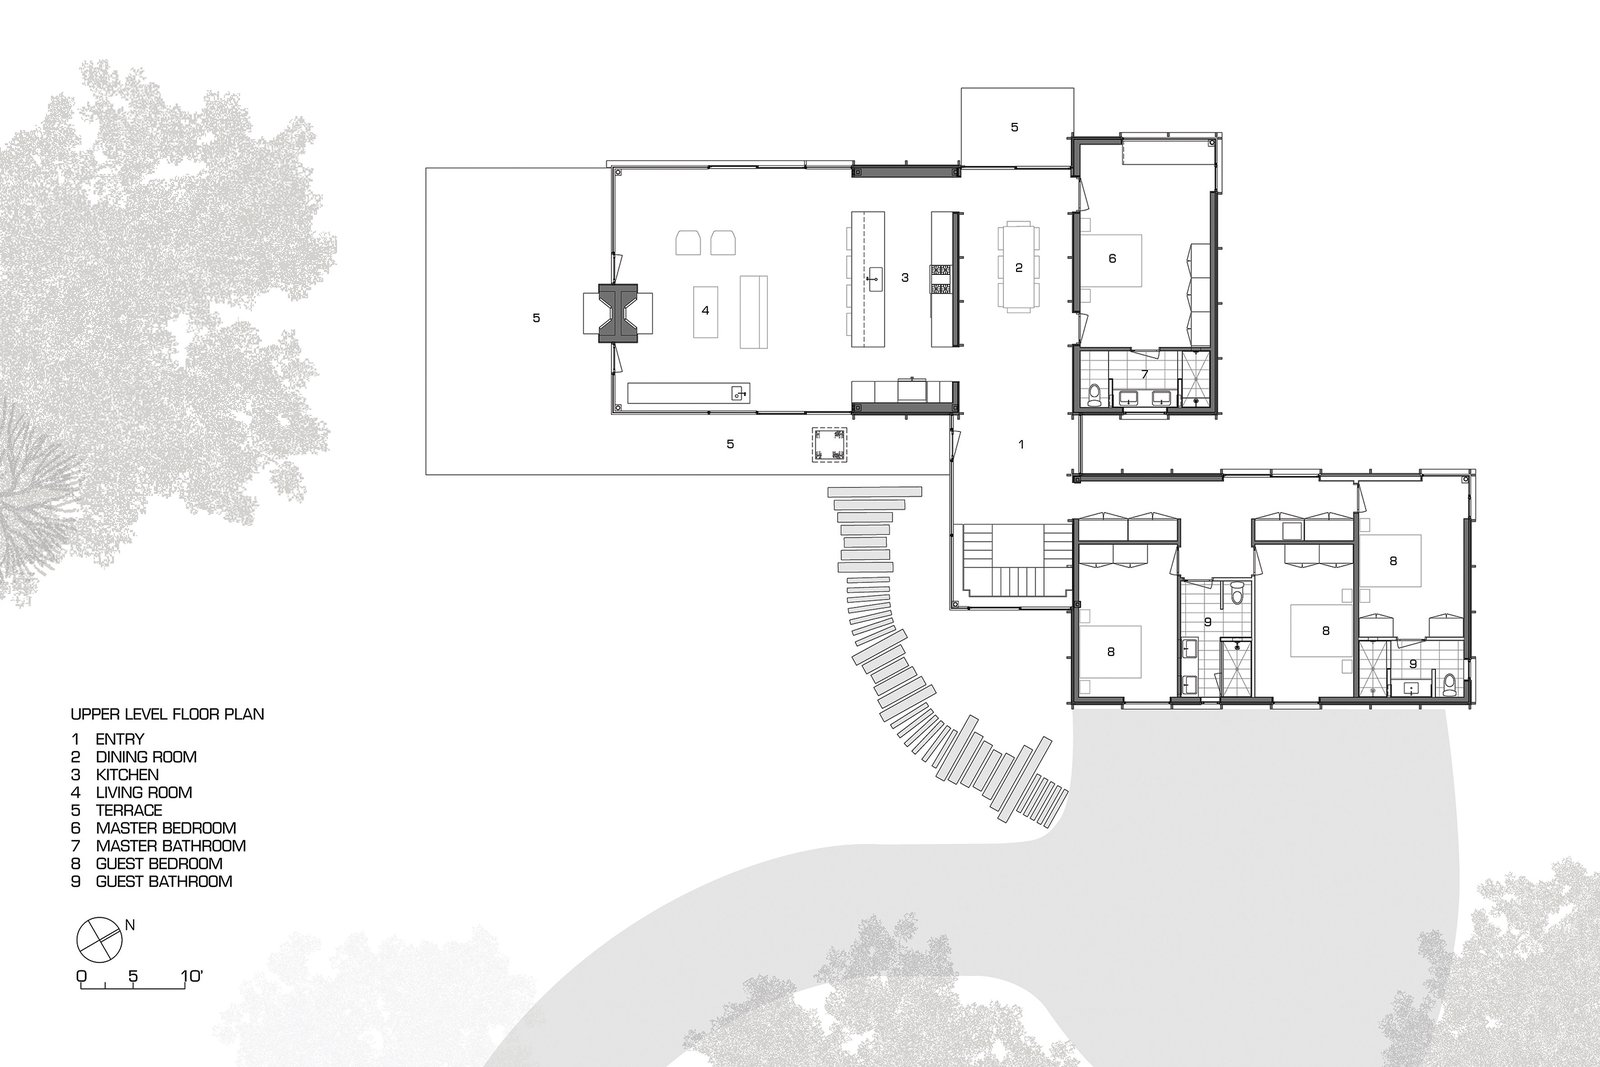 Upper level floor plan  Photo 4 of 12 in A Dramatic Cantilevered Roof Creates a Spacious Terrace Overlooking Lake Michigan